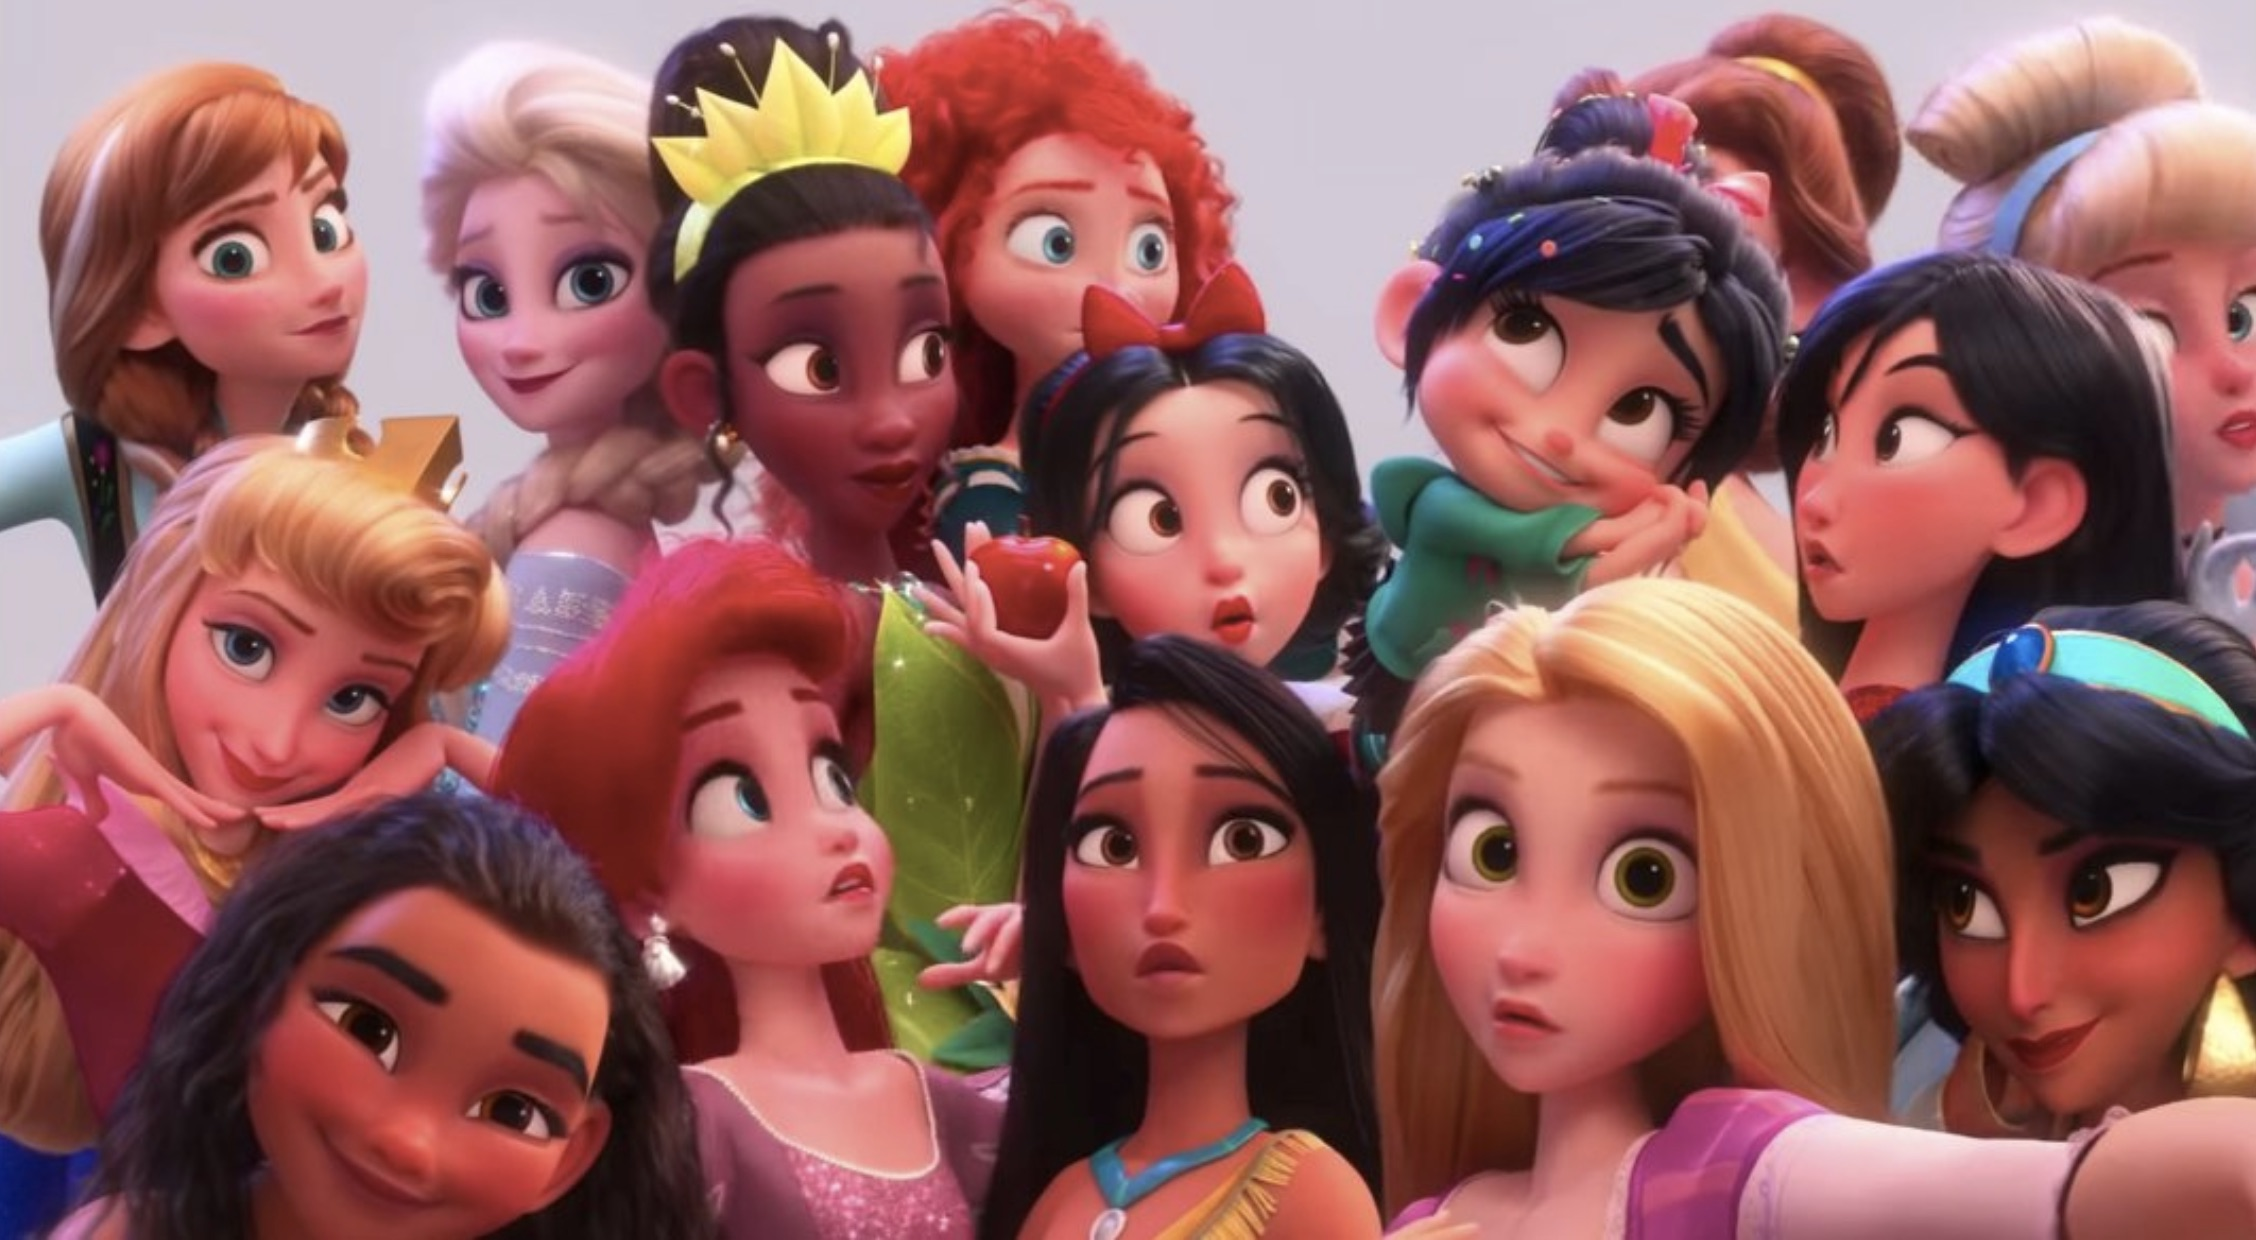 Disney just restored Princess Tiana's original skin tone amidst claims of colorism in the <em>Wreck-It Ralph 2</em> trailer